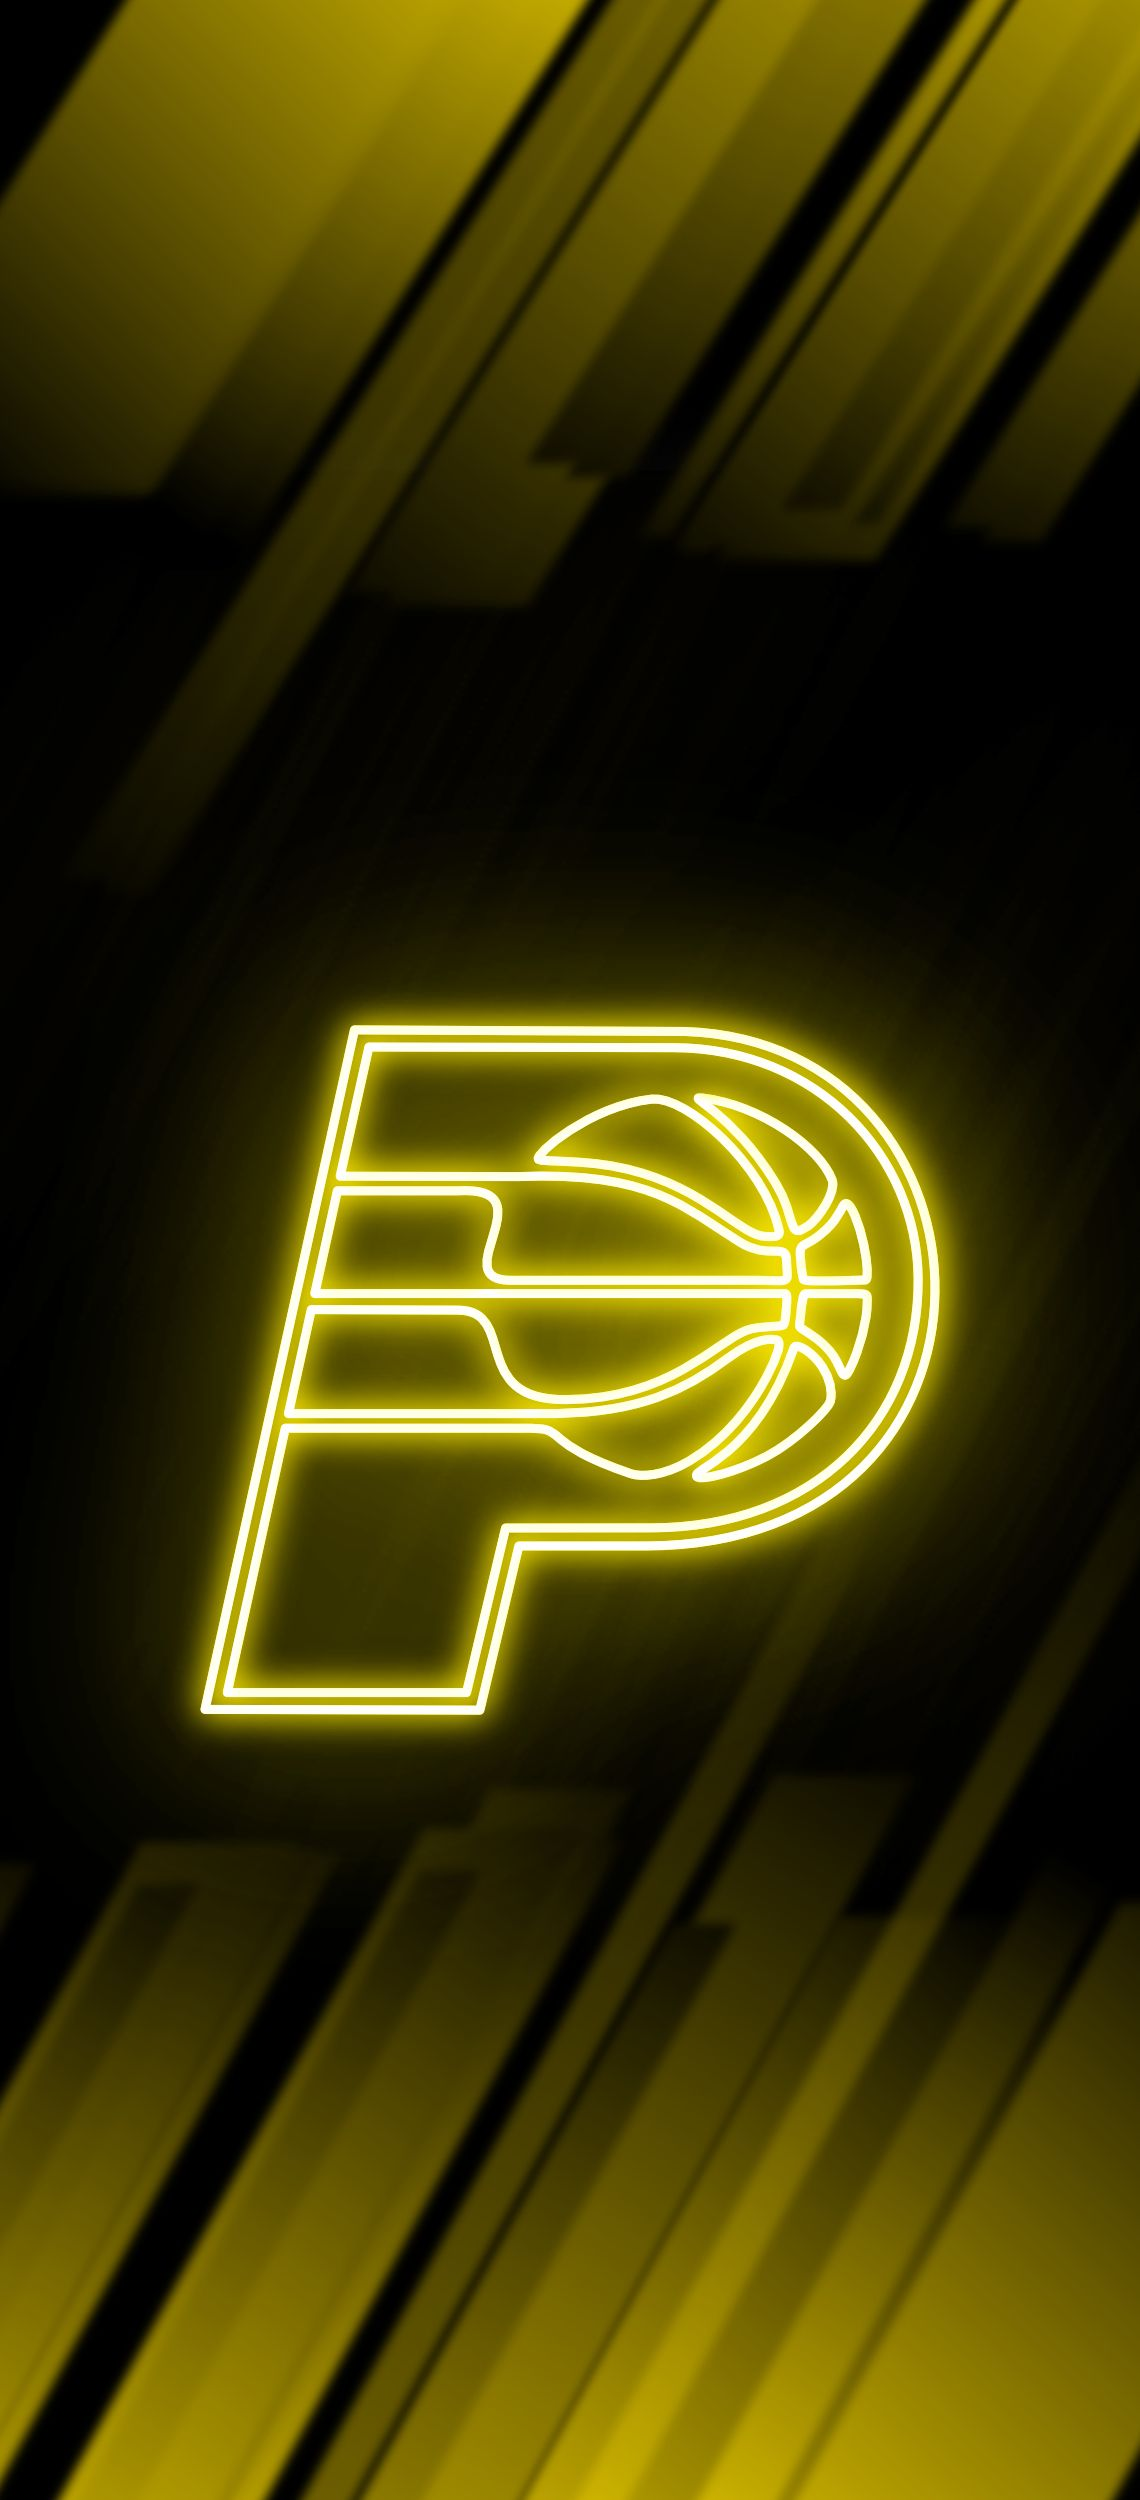 Indiana Pacers Neon Wallpaper Indiana Pacers Nba Wallpapers Nba Basketball Teams